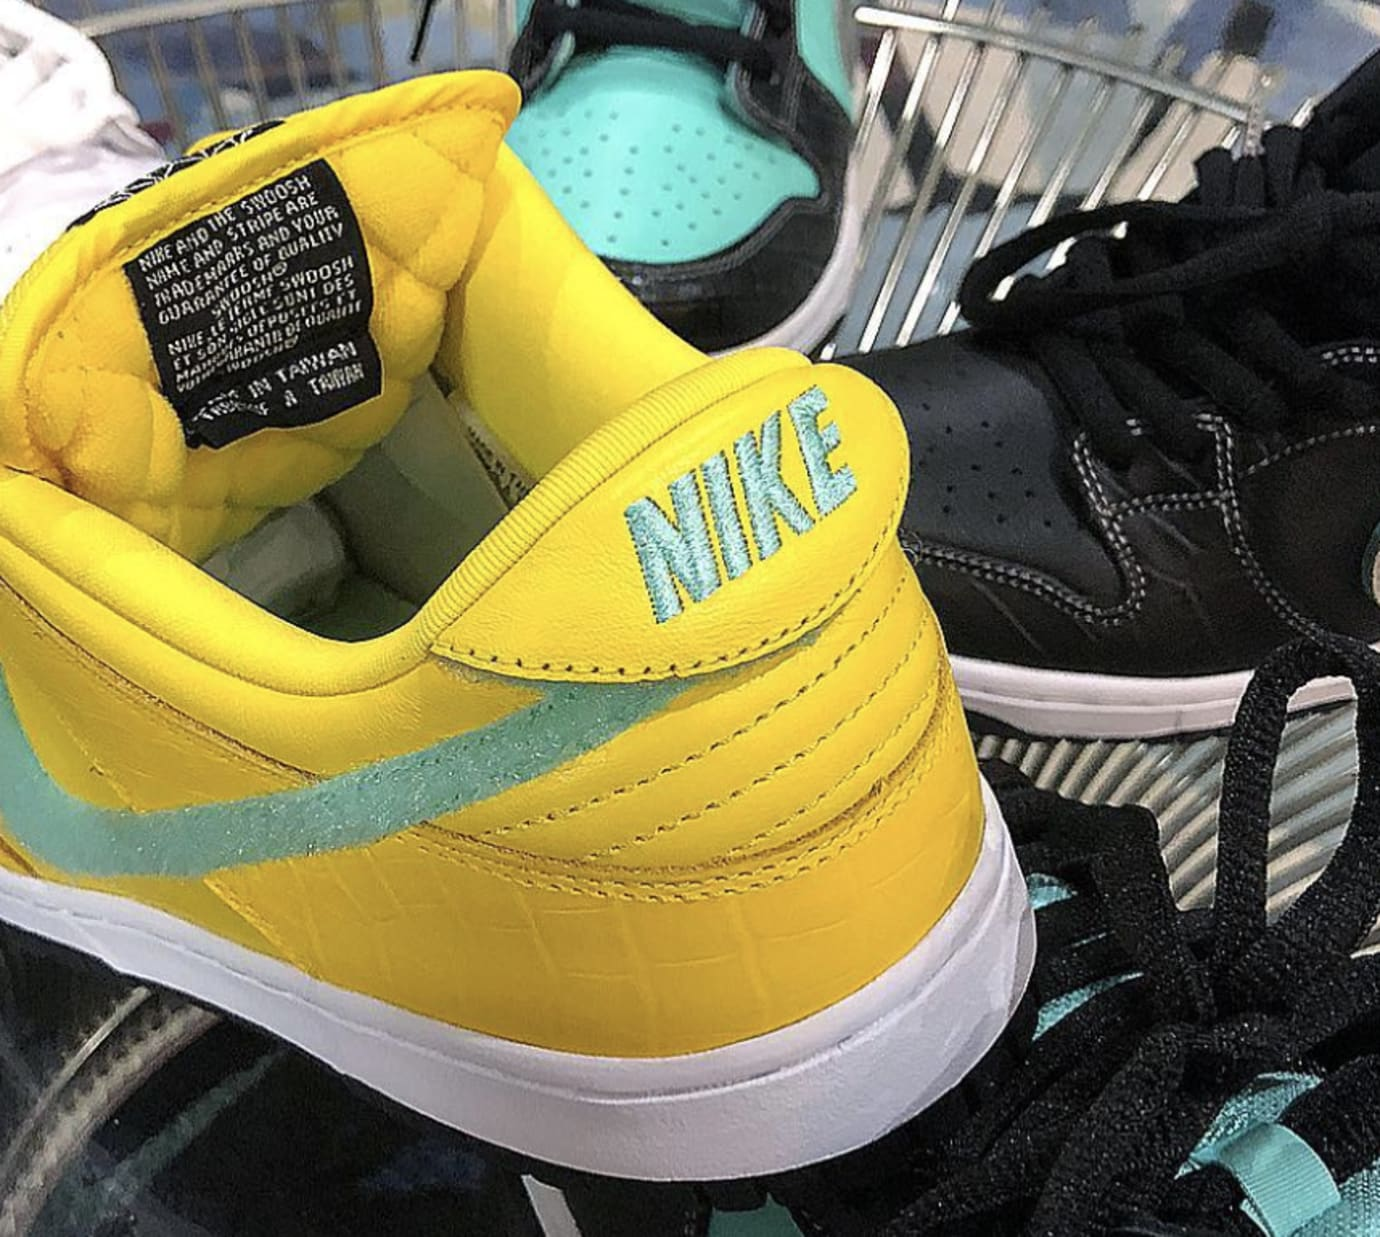 newest 6036d 20460 Image via nickydiamonds · Diamond Supply Co. x Nike SB Dunk Low Canary  Yellow 3